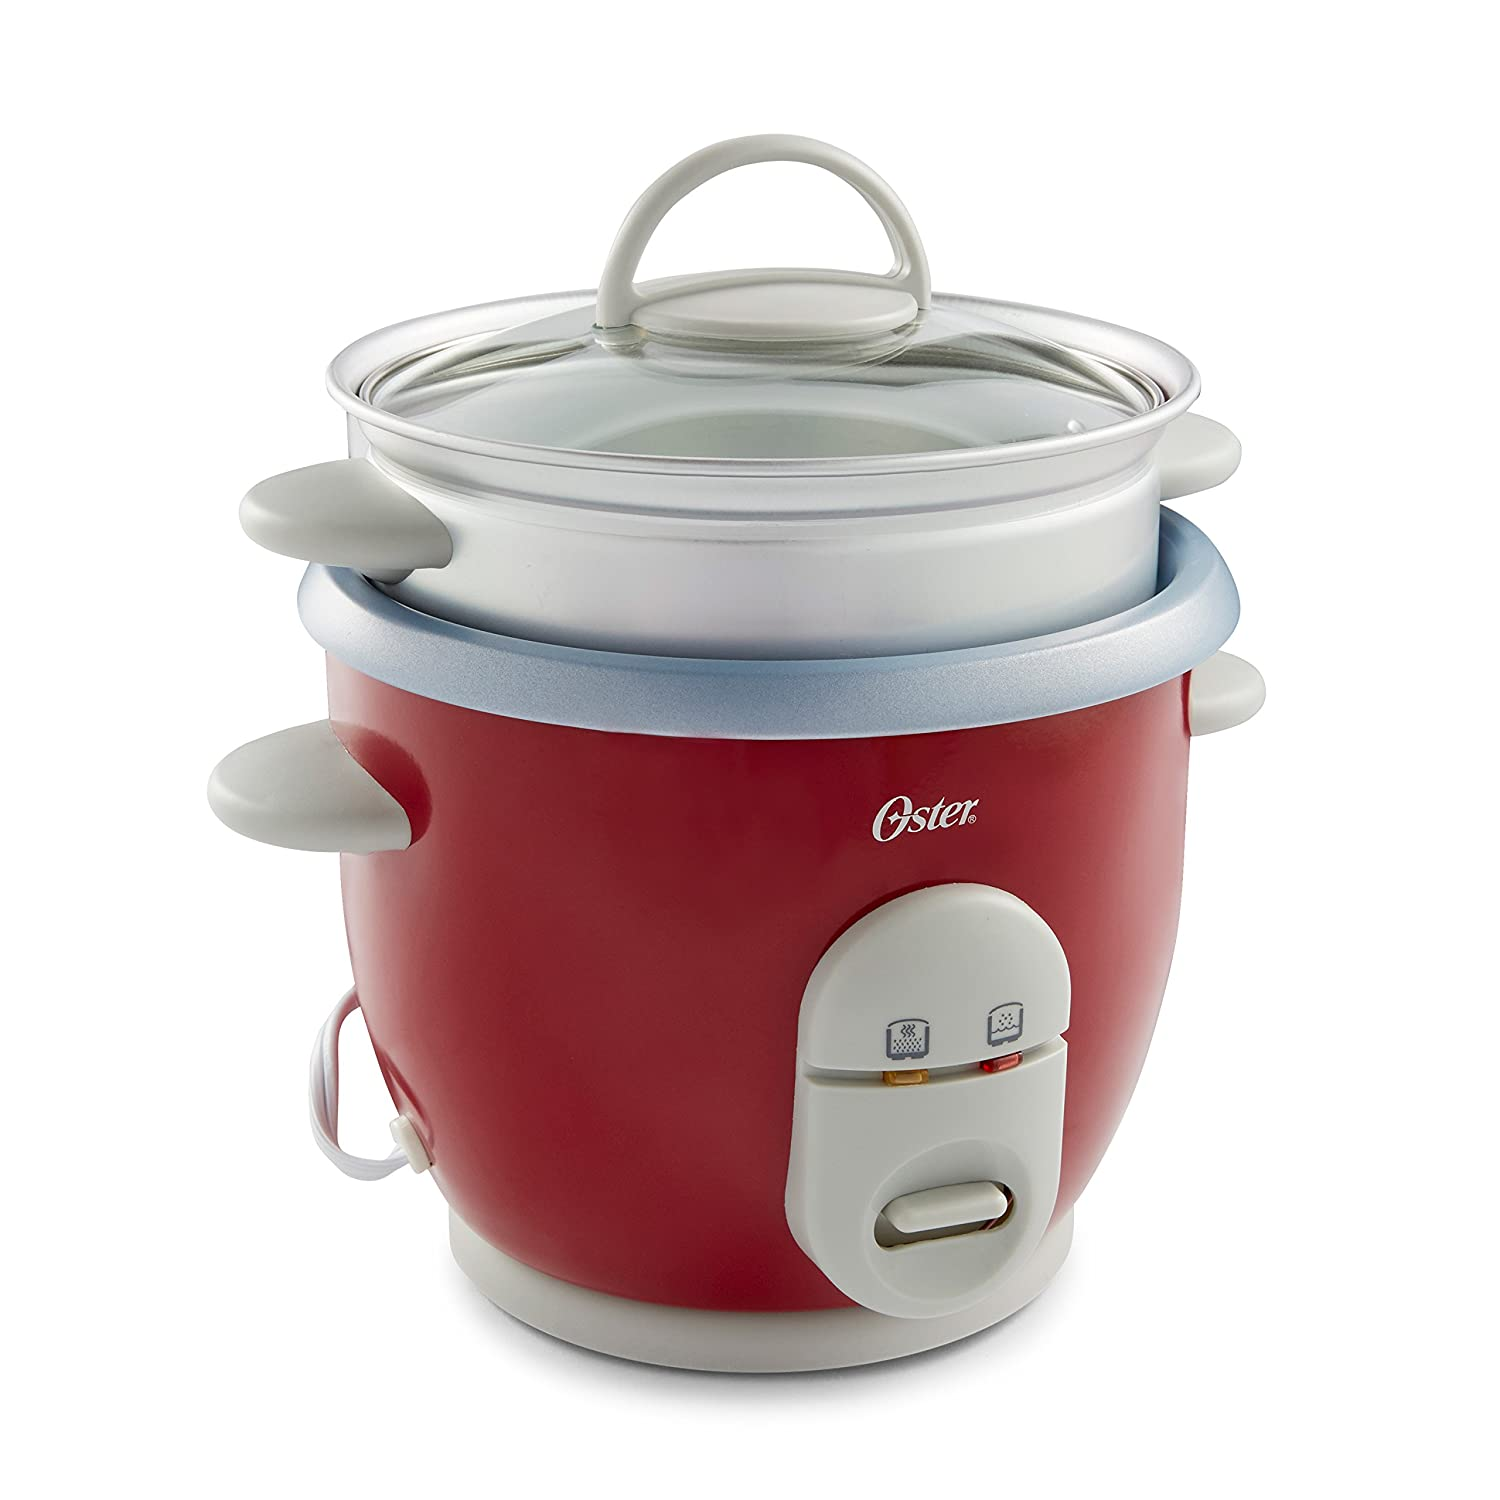 Oster 6-Cup Rice Cooker with Steamer, Red 004722-000-000